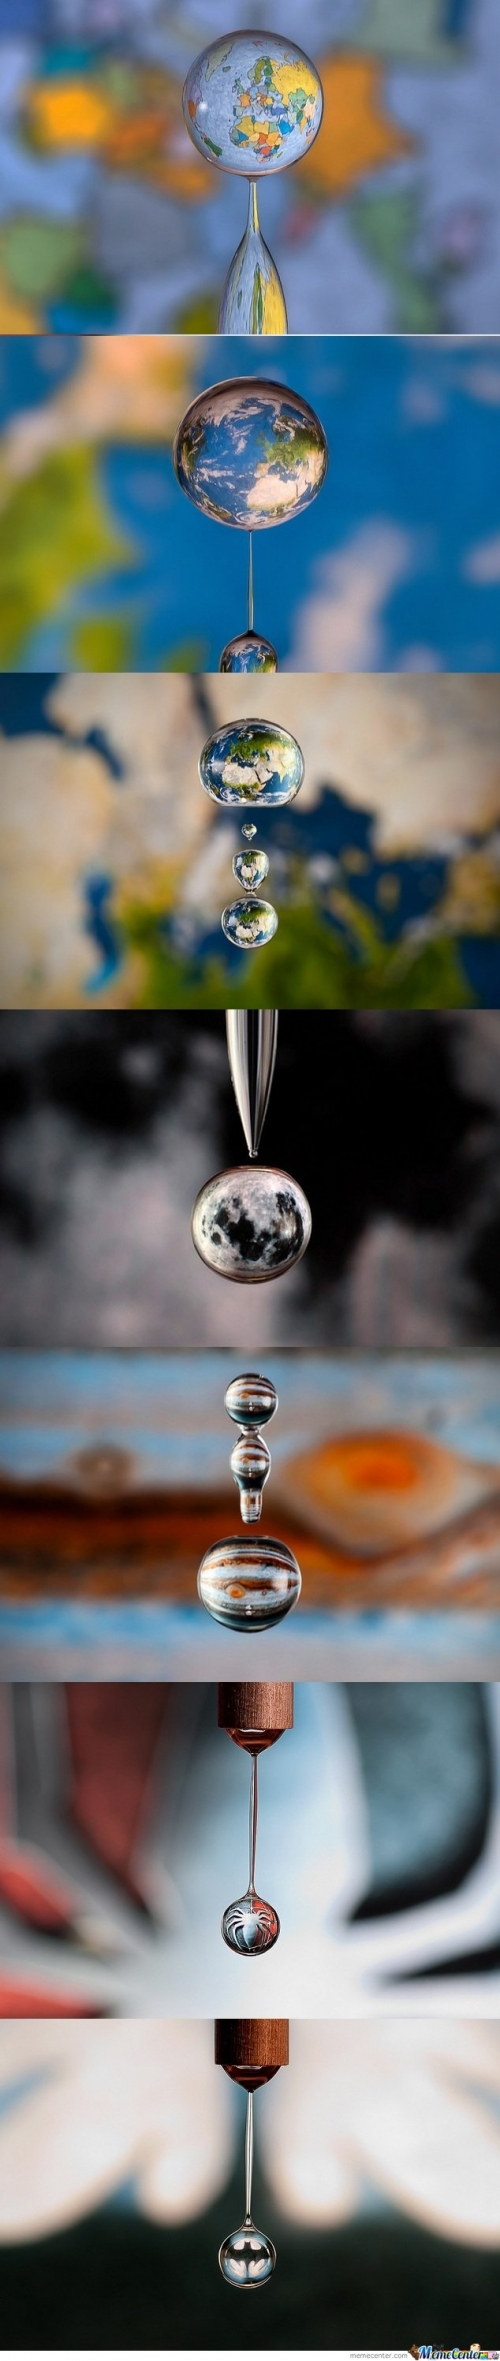 Cool Water Drop Photography